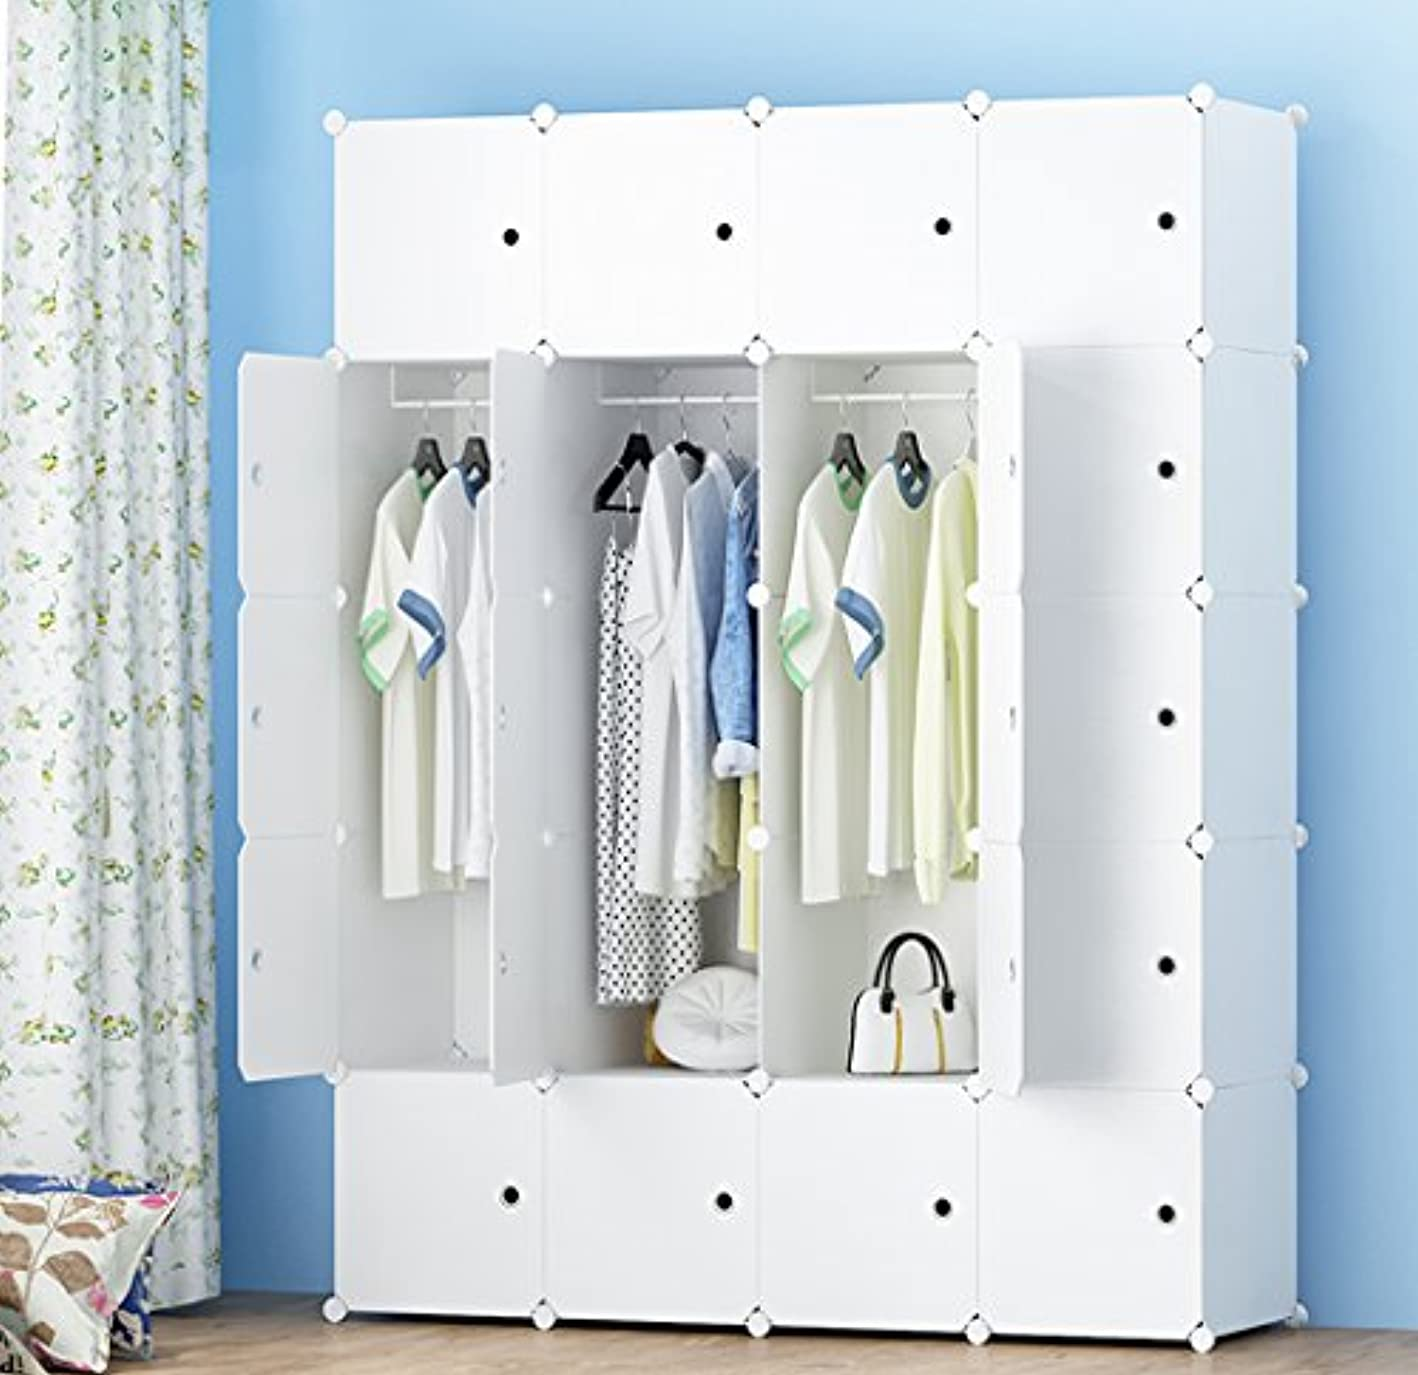 MEGAFUTURE Portable Wardrobe for Hanging Clothes, Combination Armoire, Modular Cabinet for Space Saving, Ideal Storage Organizer Cube for books, toys, towels(20-Cube)